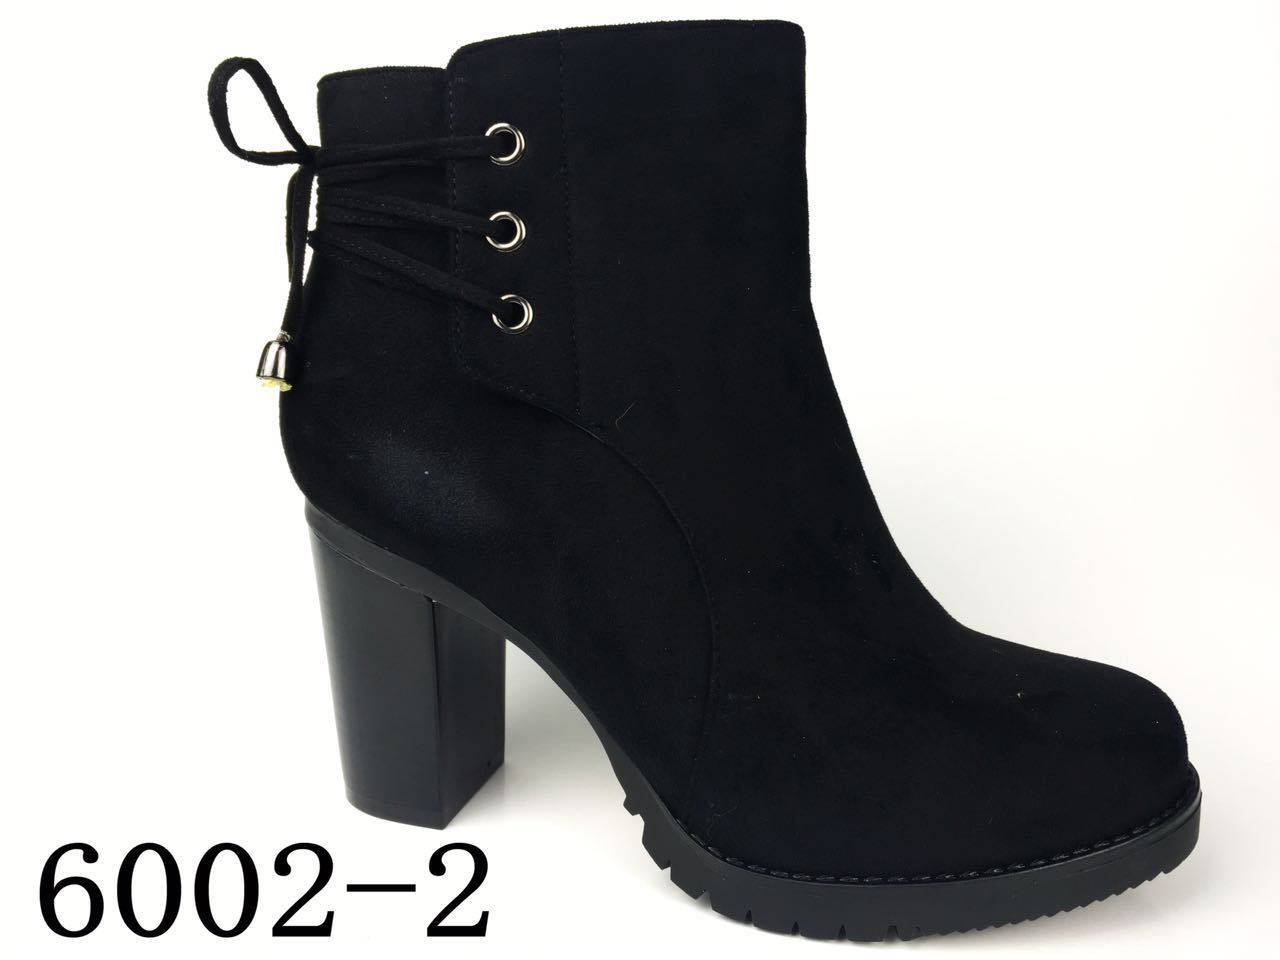 High Heel Shoes for Fashion Women and Ladies (6002-2)